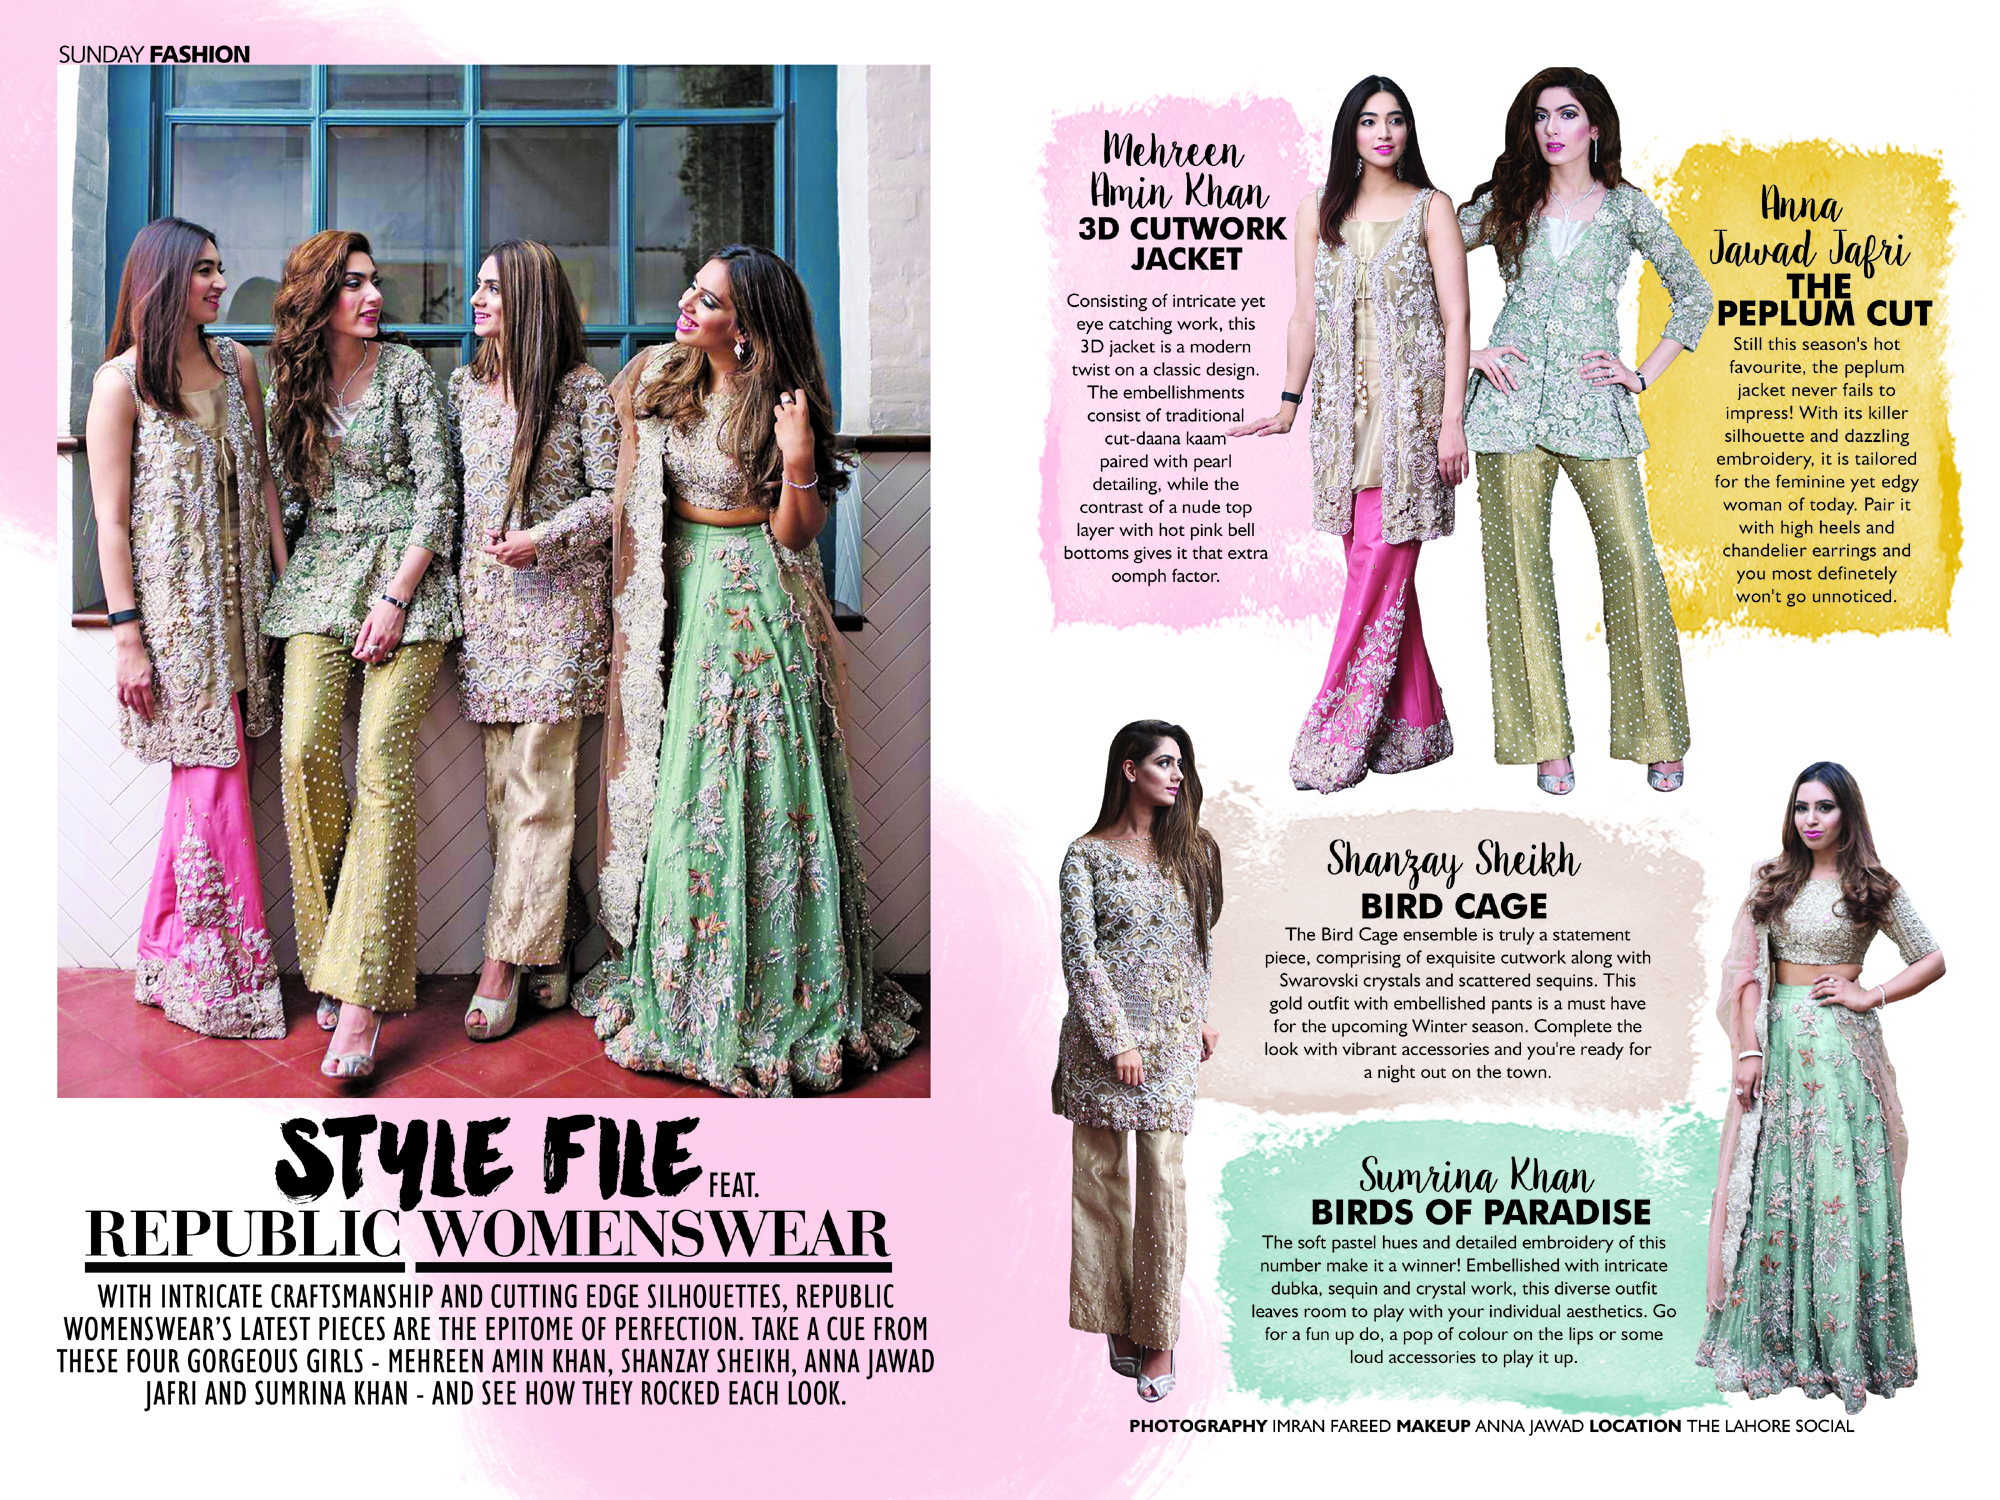 style-file-feat-republic-womenswear-nov-06-761-copy